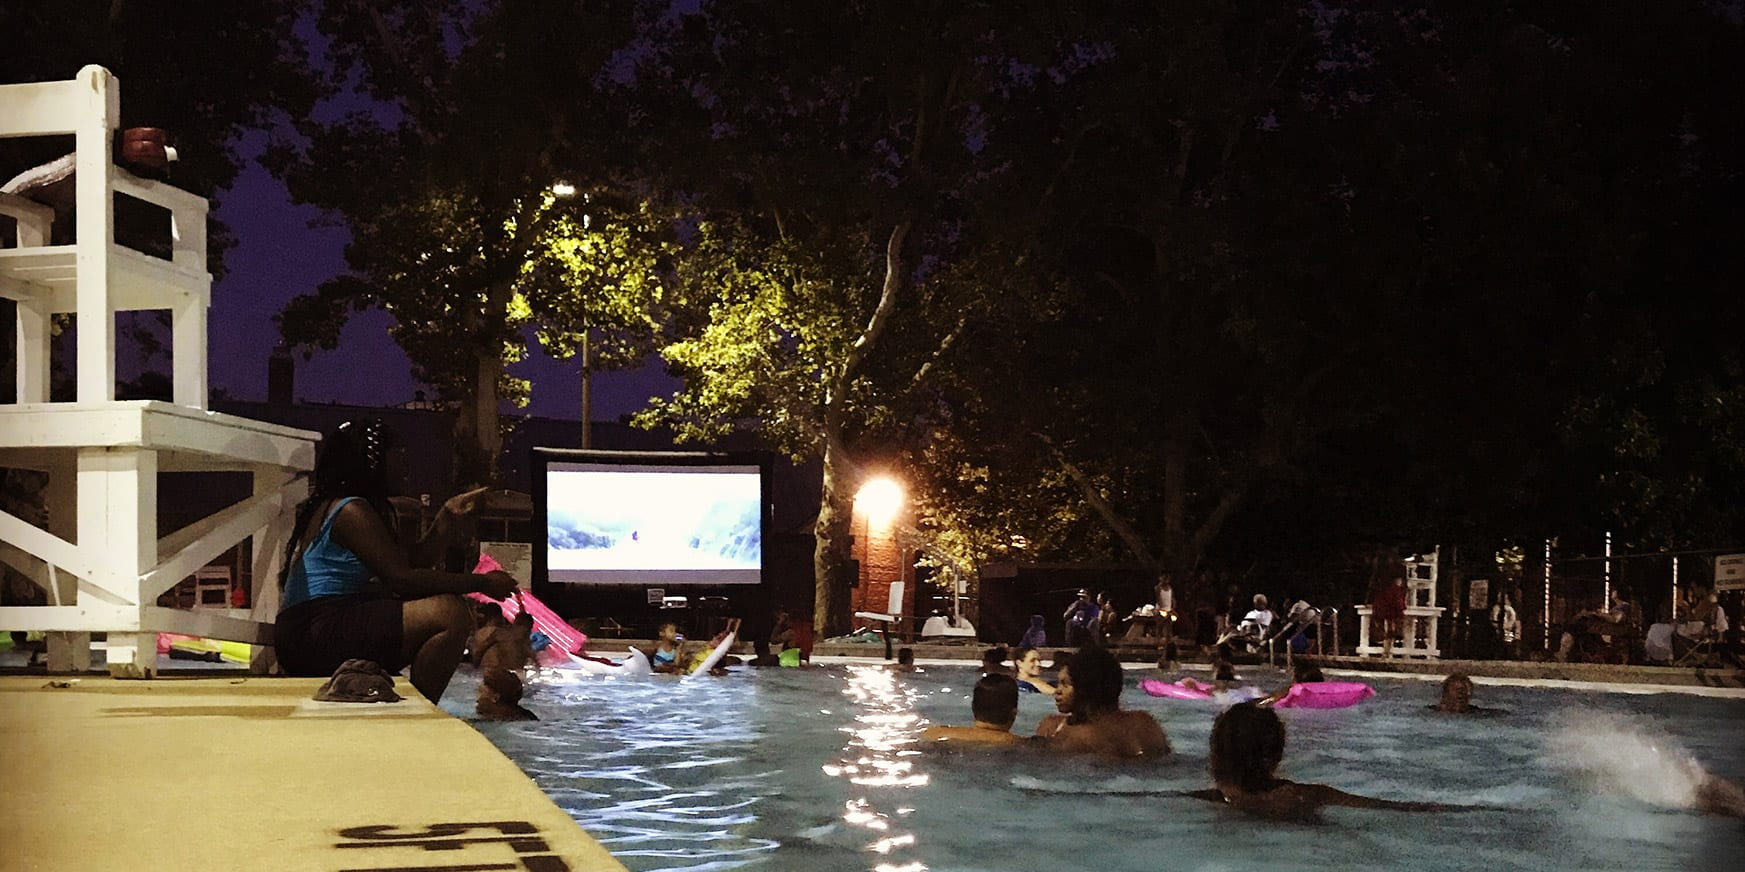 Dive-in movie at the Marquette Park Pool.